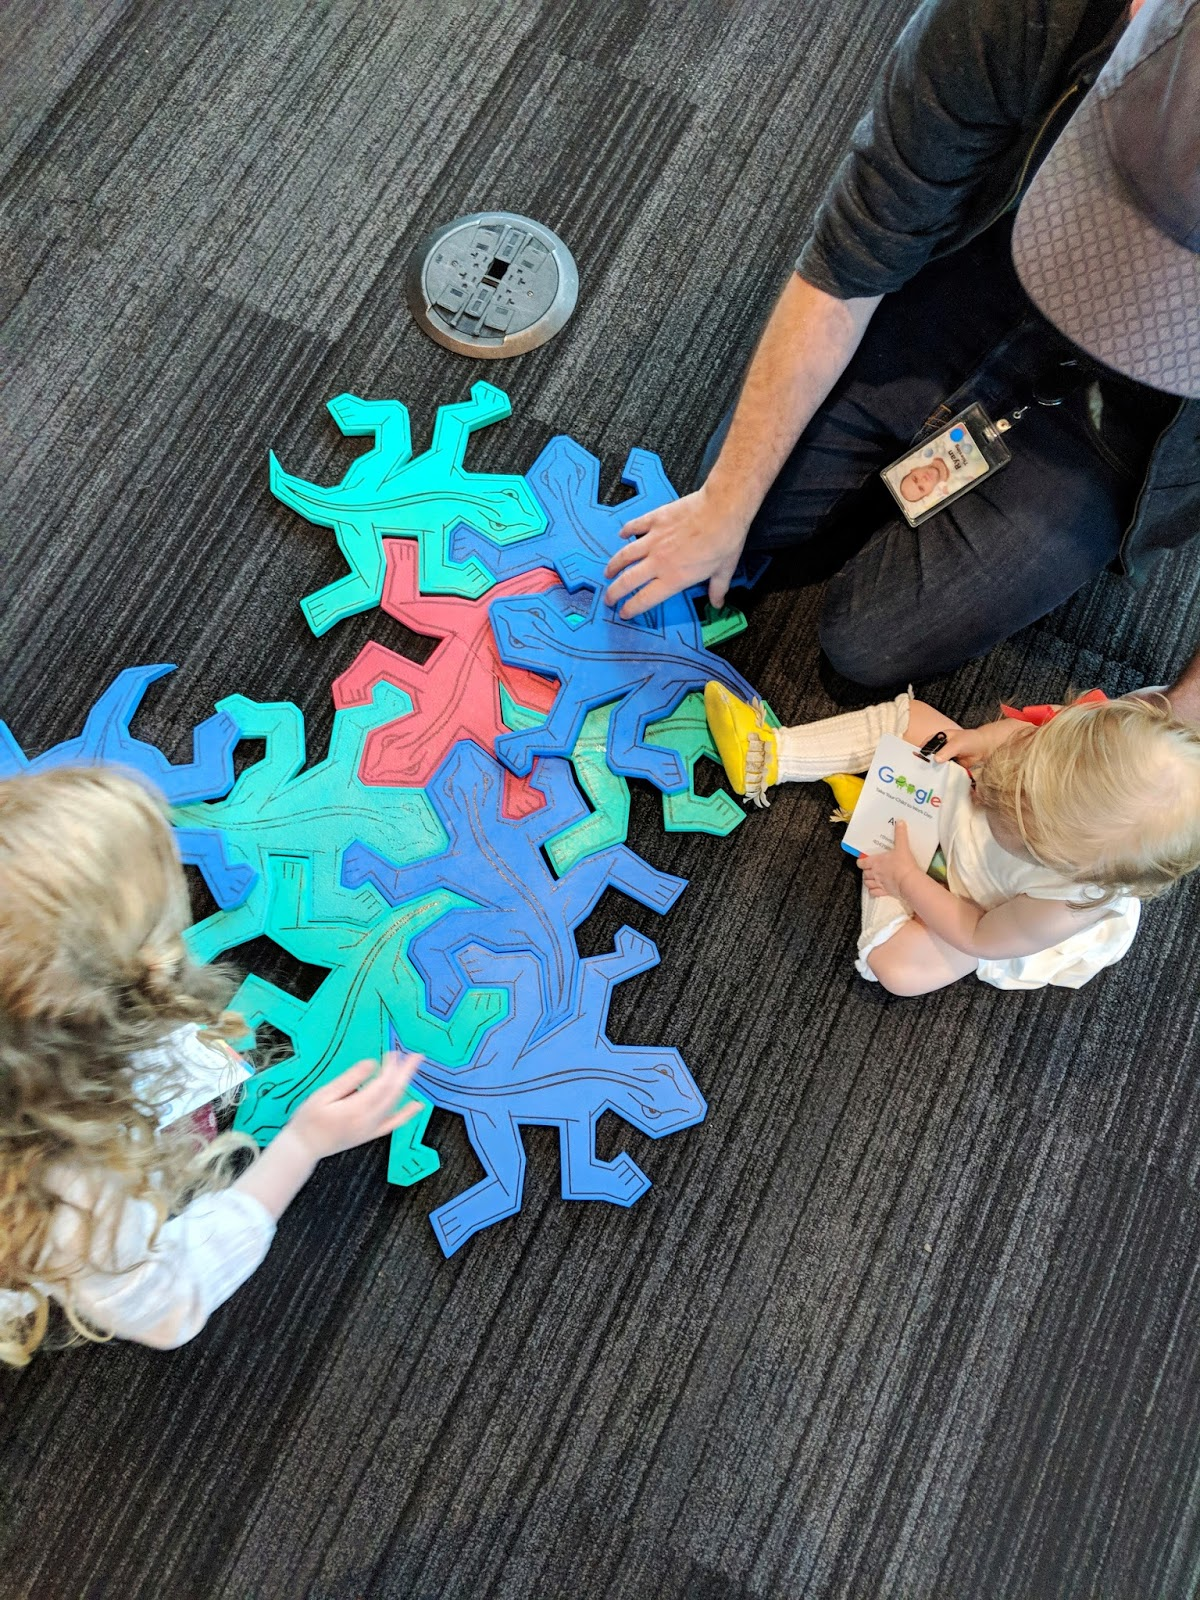 dad helping children put lizard puzzle together playtime daddy father learning growing family